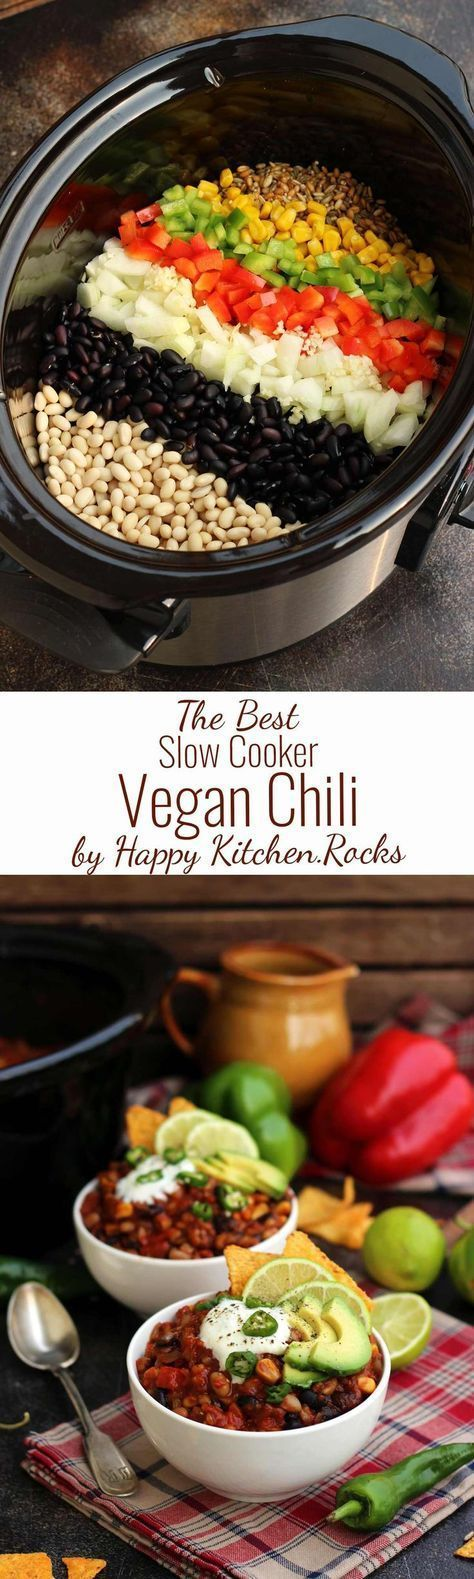 The Best Slow Cooker Vegan Chili Recipe is wholesome, delicious and easy to make. Comforting and healthy freezable dinner packed with nutrients and flavors! #chili #vegan #slowcooker #vegetarian #mealprepping #dinnerrecipes #thanksgivingrecipes #comfortfood #healthyfood #healthyfoodrecipes #slowcookerrecipes #vegetarianrecipes #vegetarianfood #vegetariandinner #fallrecipes #comfortfoodrecipes #winterfood #veganrecipes #veganchili #vegandinner #veganfood #recipes #healthyrecipes